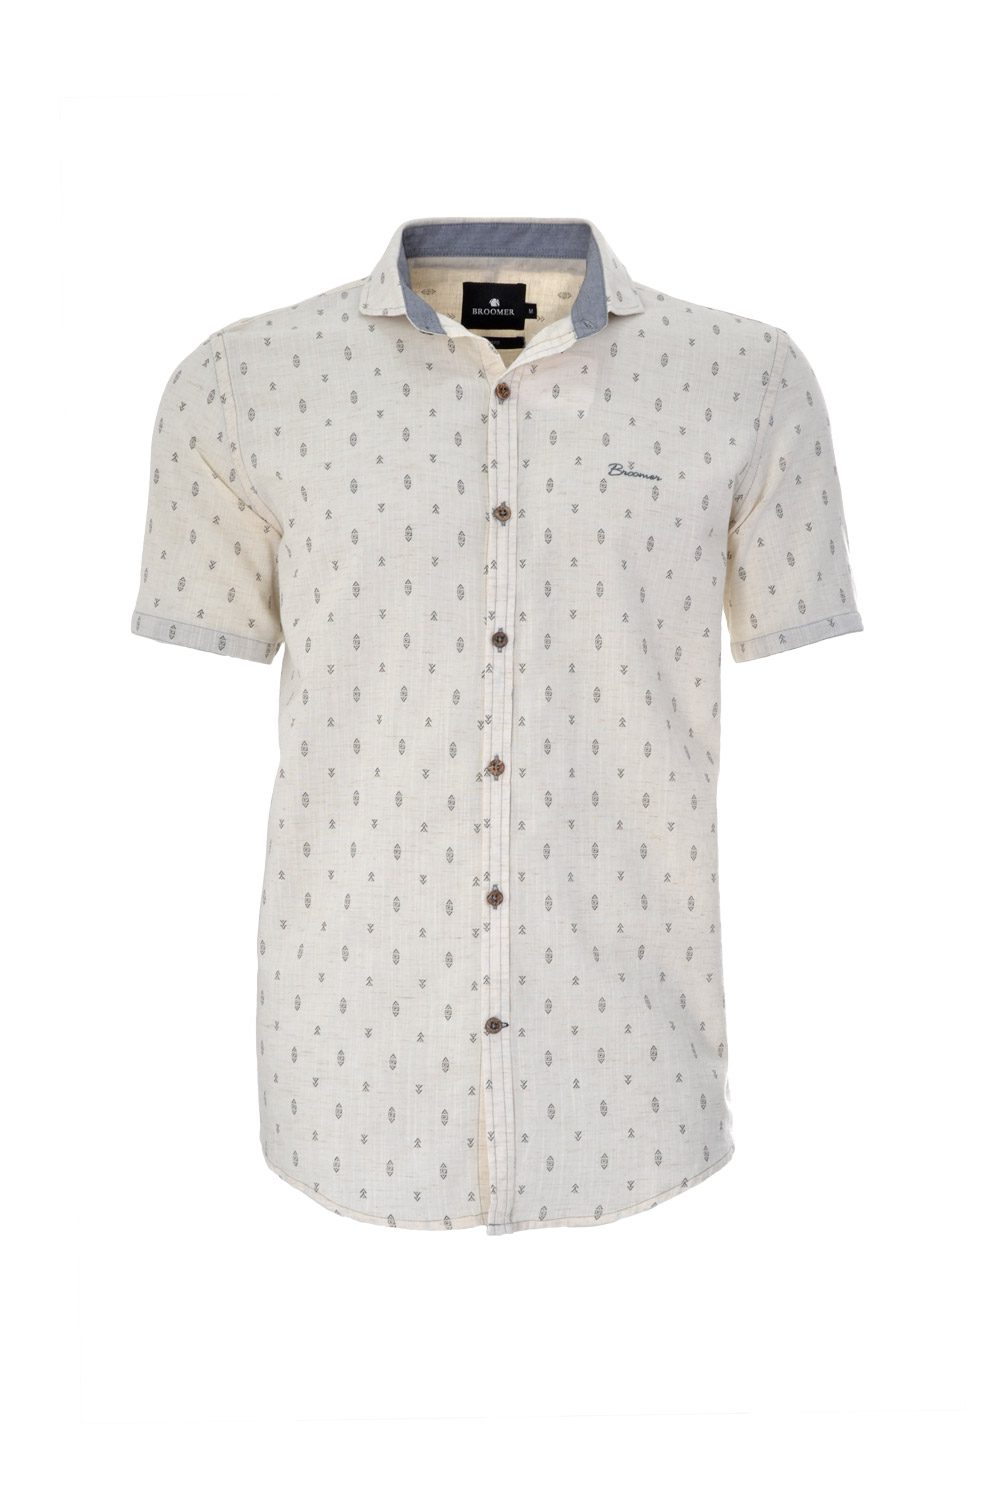 CAMISA MC BLUES SLIM ALGODAO MODAL LINHO TRENDY ESTAMPA BEGE CLARO